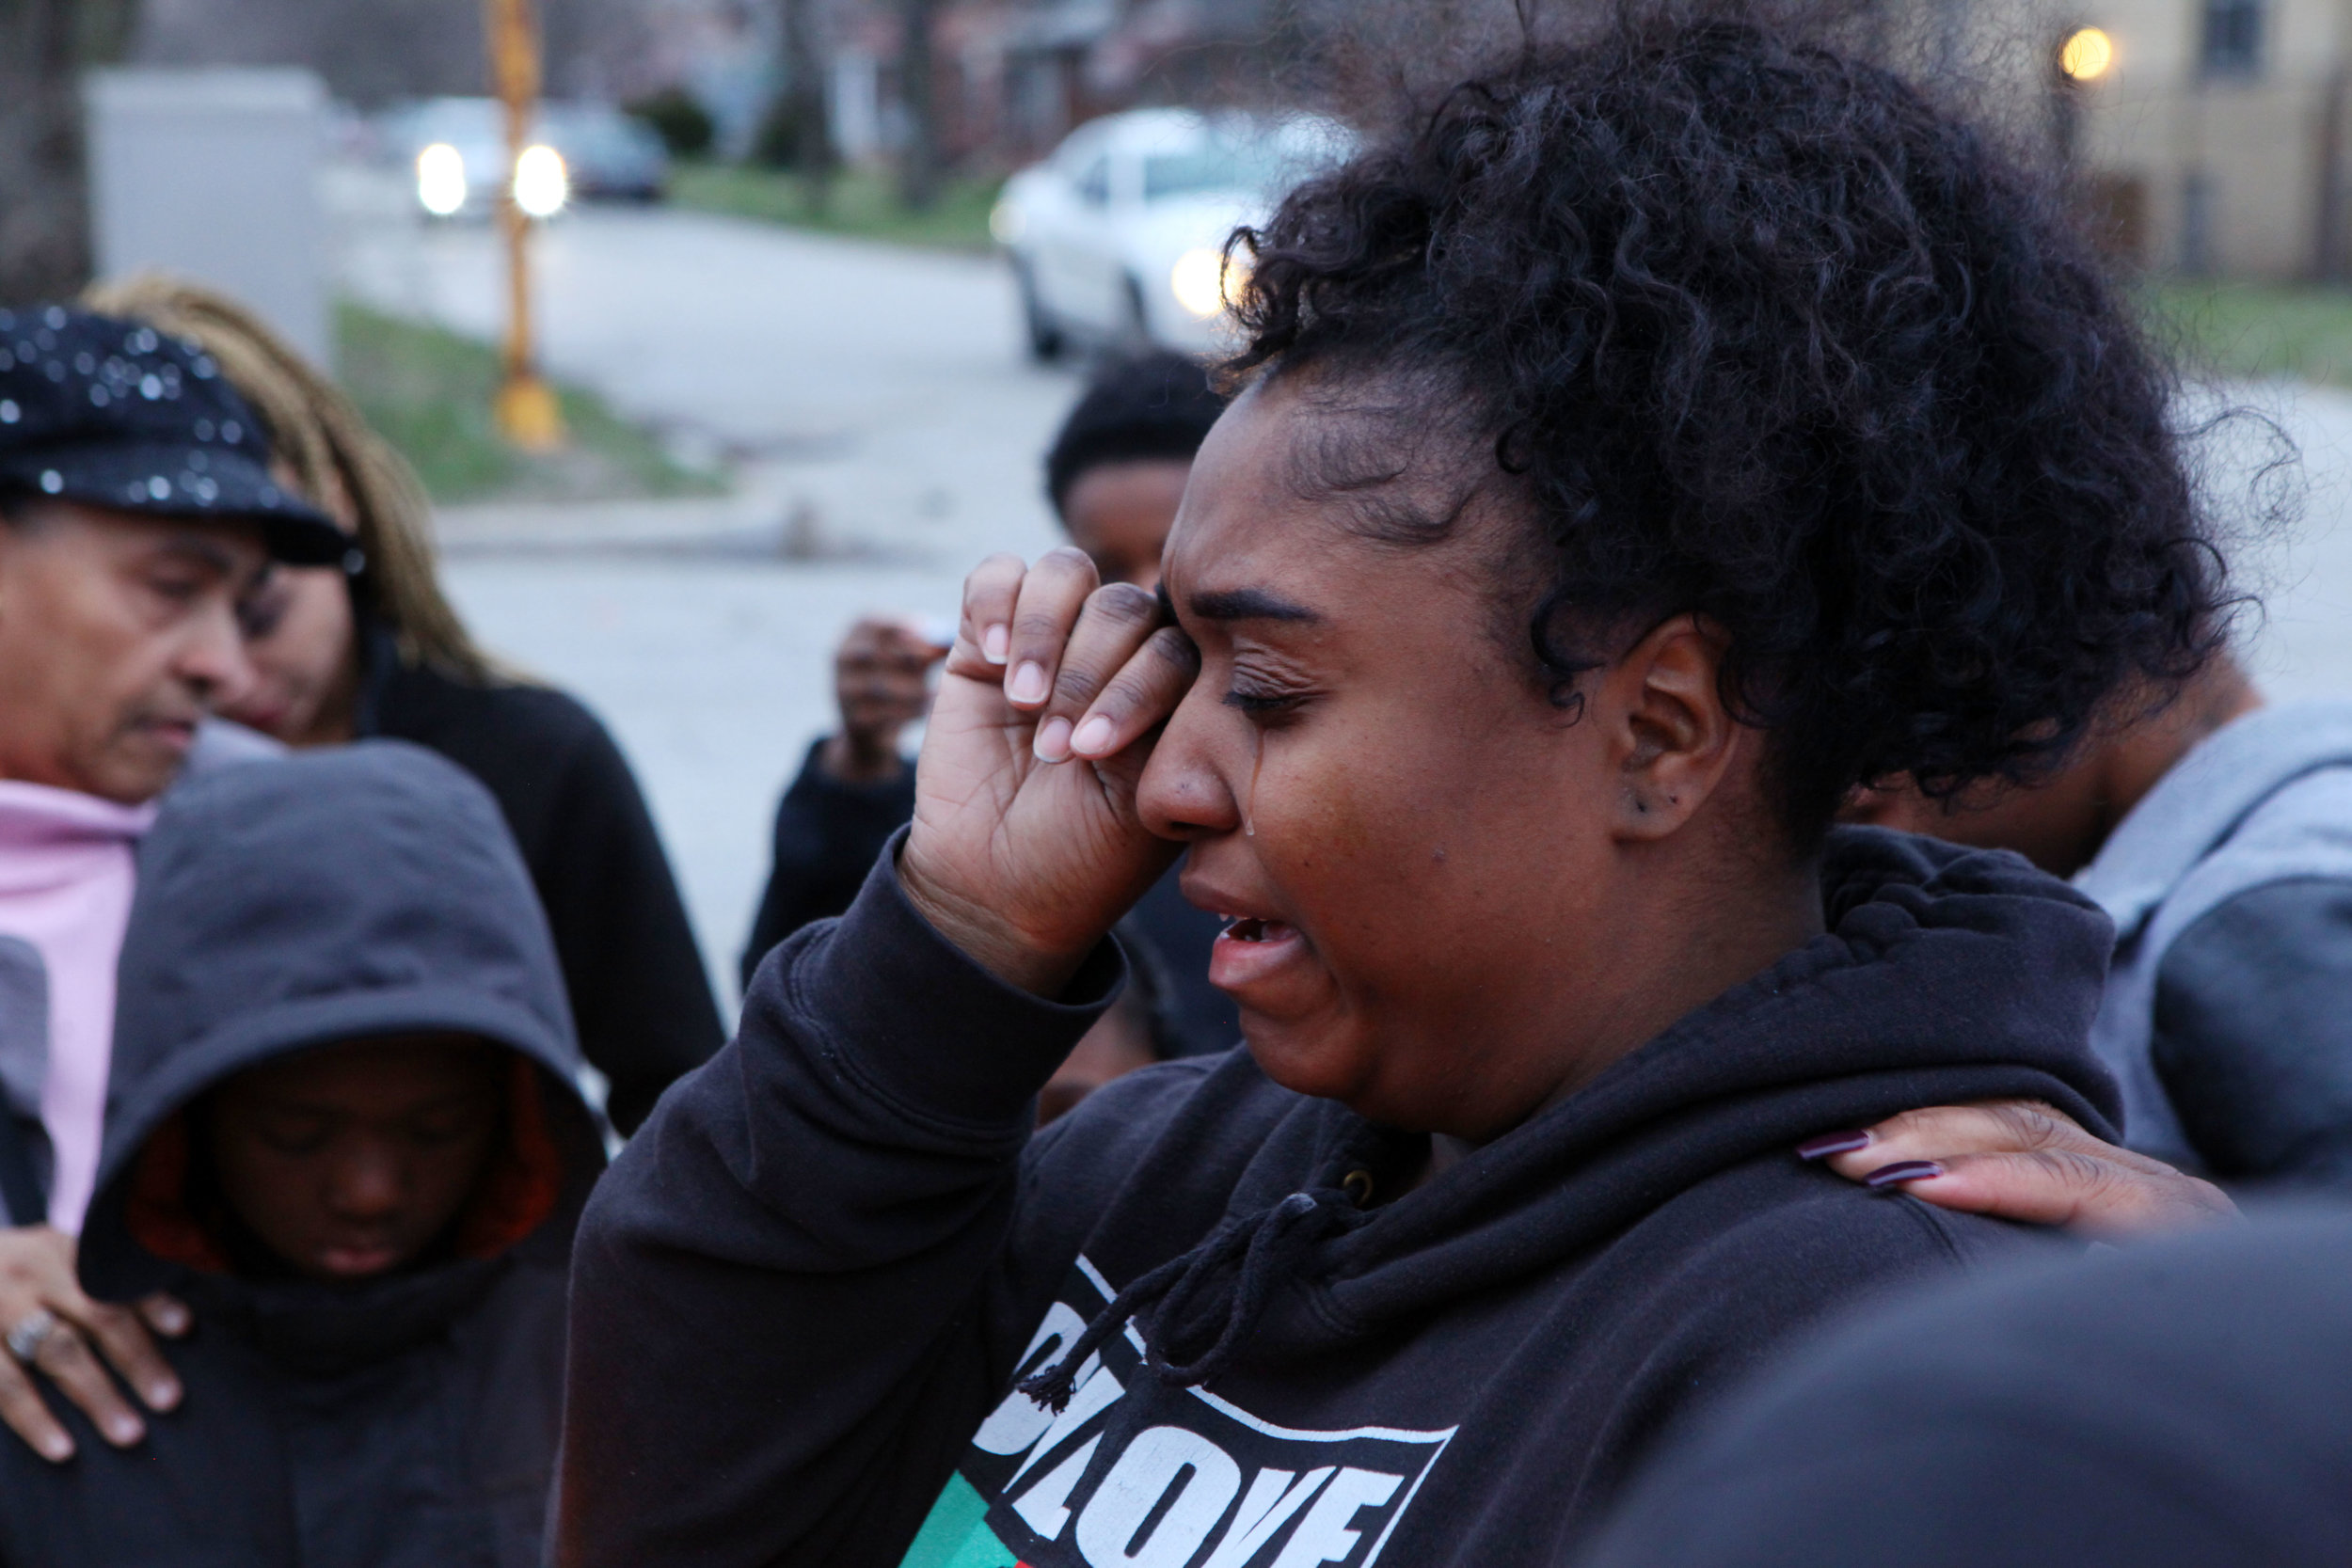 Shuntaya Rogers, of Lake Station, sheds tears as she speaks during a candlelight vigil for her brother, Markis Square, in Gary.